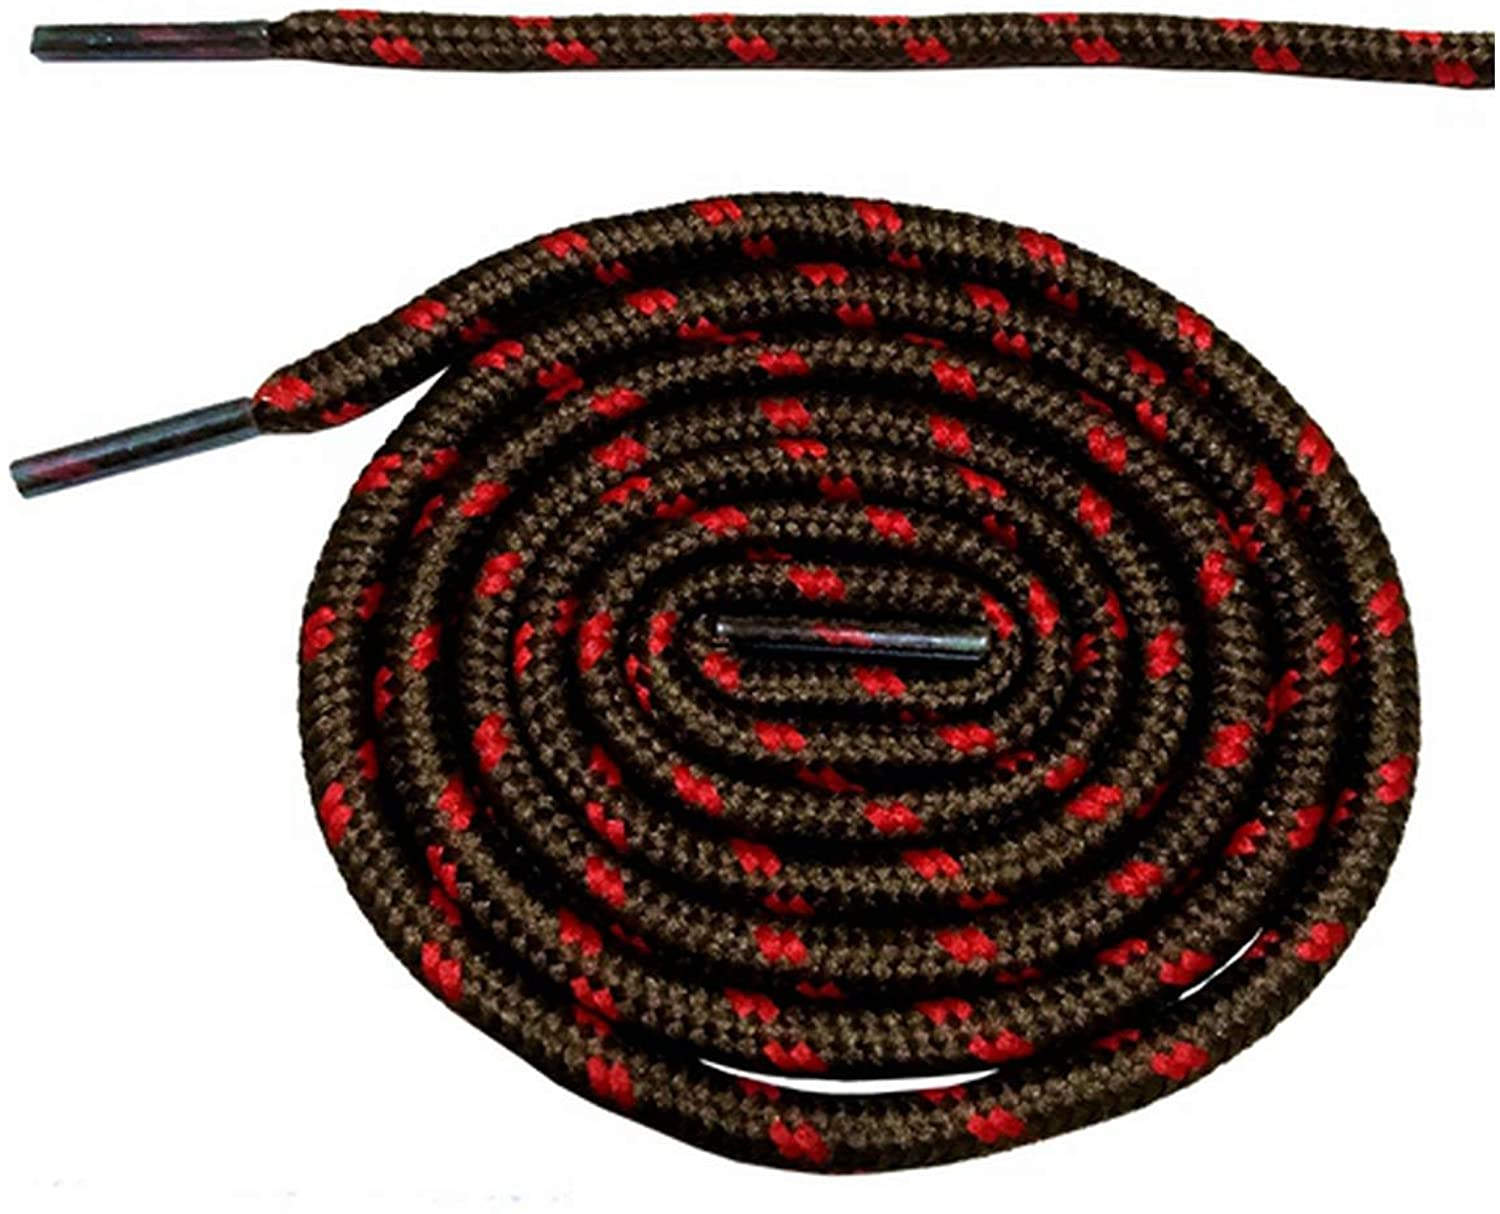 Round Shoelaces Boots Shoe Laces Cord Ropes Shoestrings with Dots 180cm/70.5